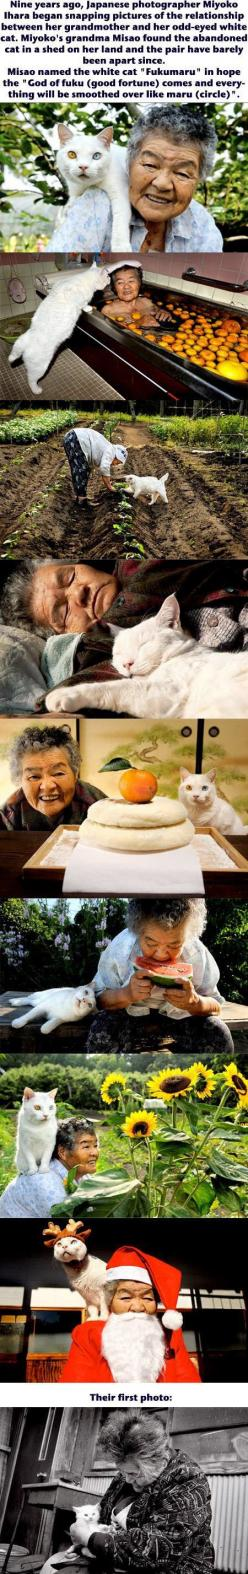 A photographer captures the beautiful relationship between her grandmother and her cat. Beautiful!: Awww Best Friends, Cat Relationships, Geeky Photographer, Pet, White Cats, Grandmother, Cat Lady, Animal, Cat Cuteness